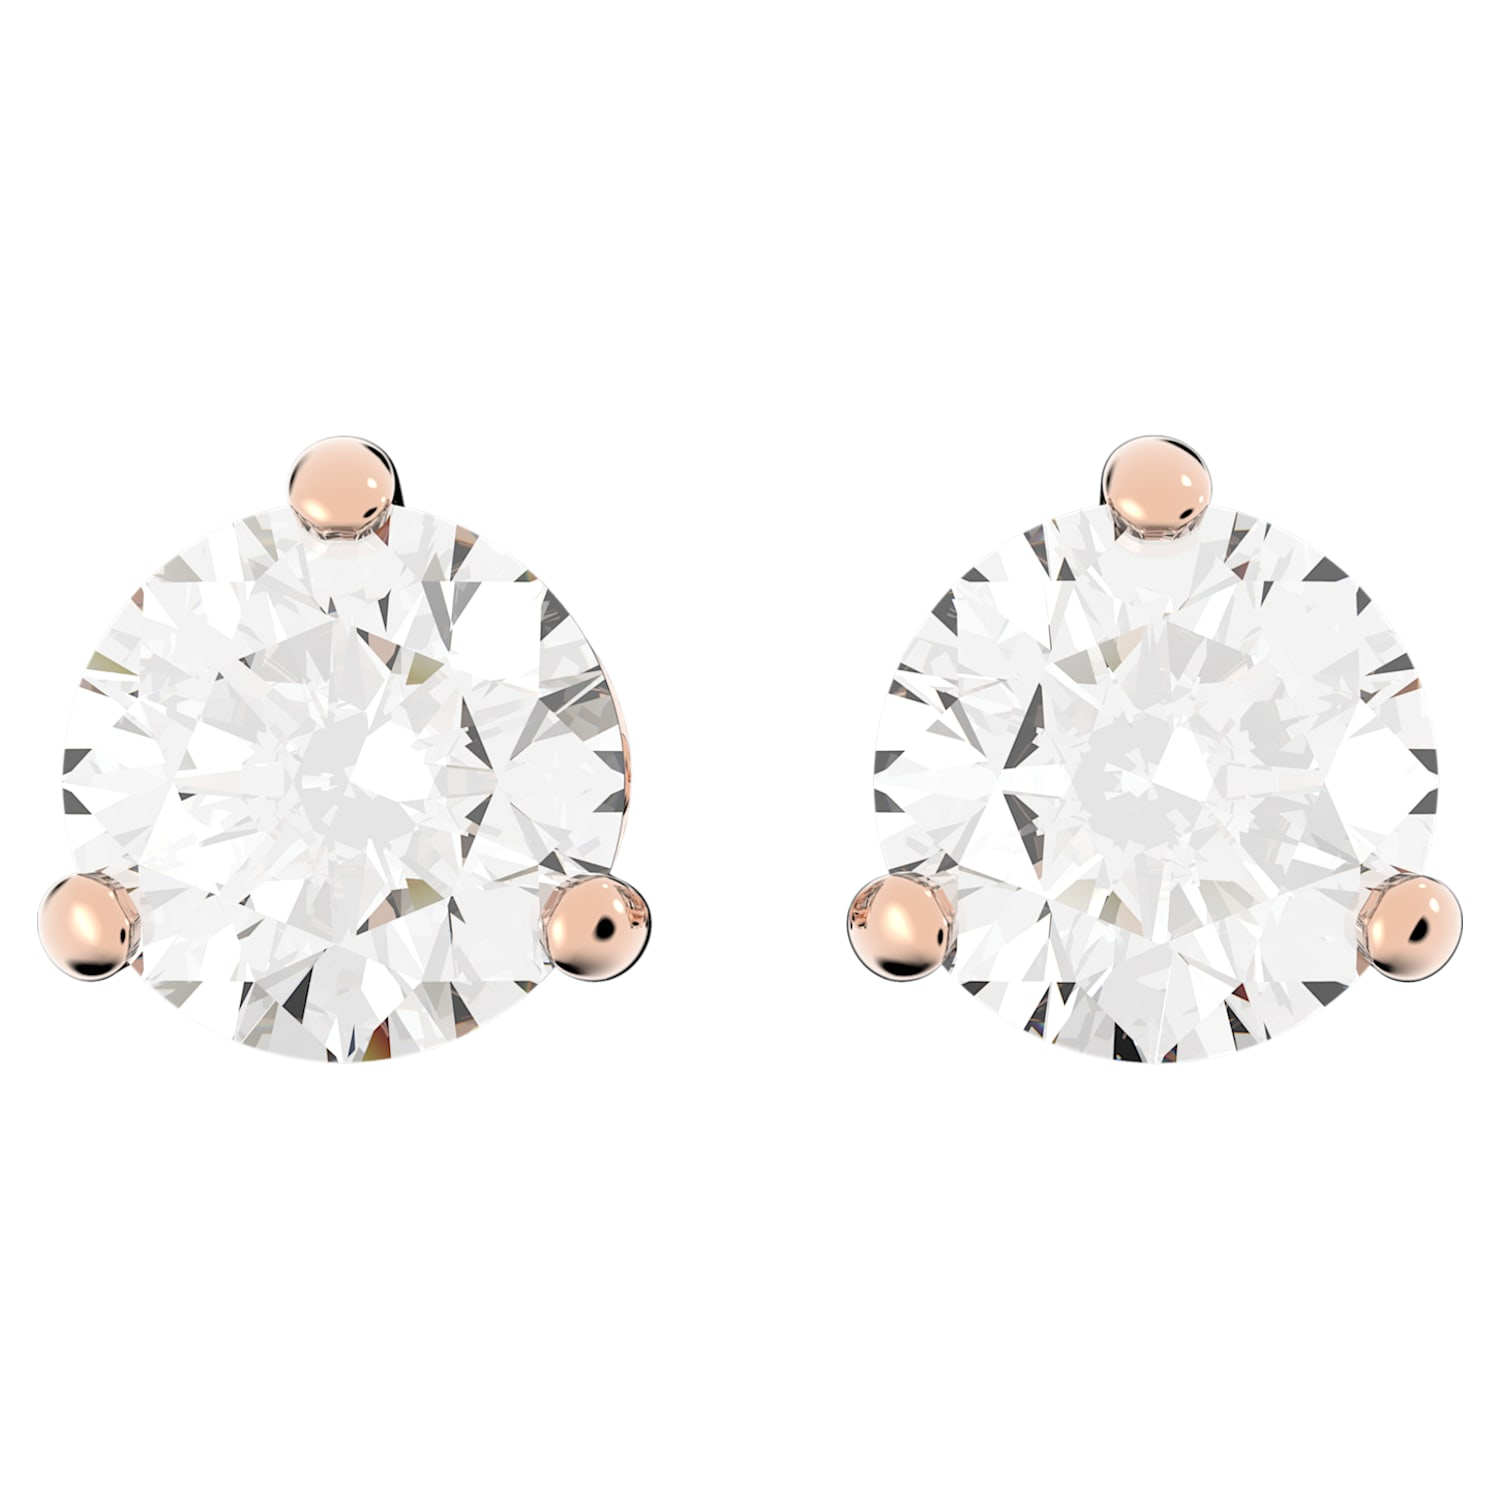 1pair2pcs-10mmX7mm Bright Gold plated Brass round natural stone earrings Rose Aventurine SA0181G-A 925 sterling silver post Earring